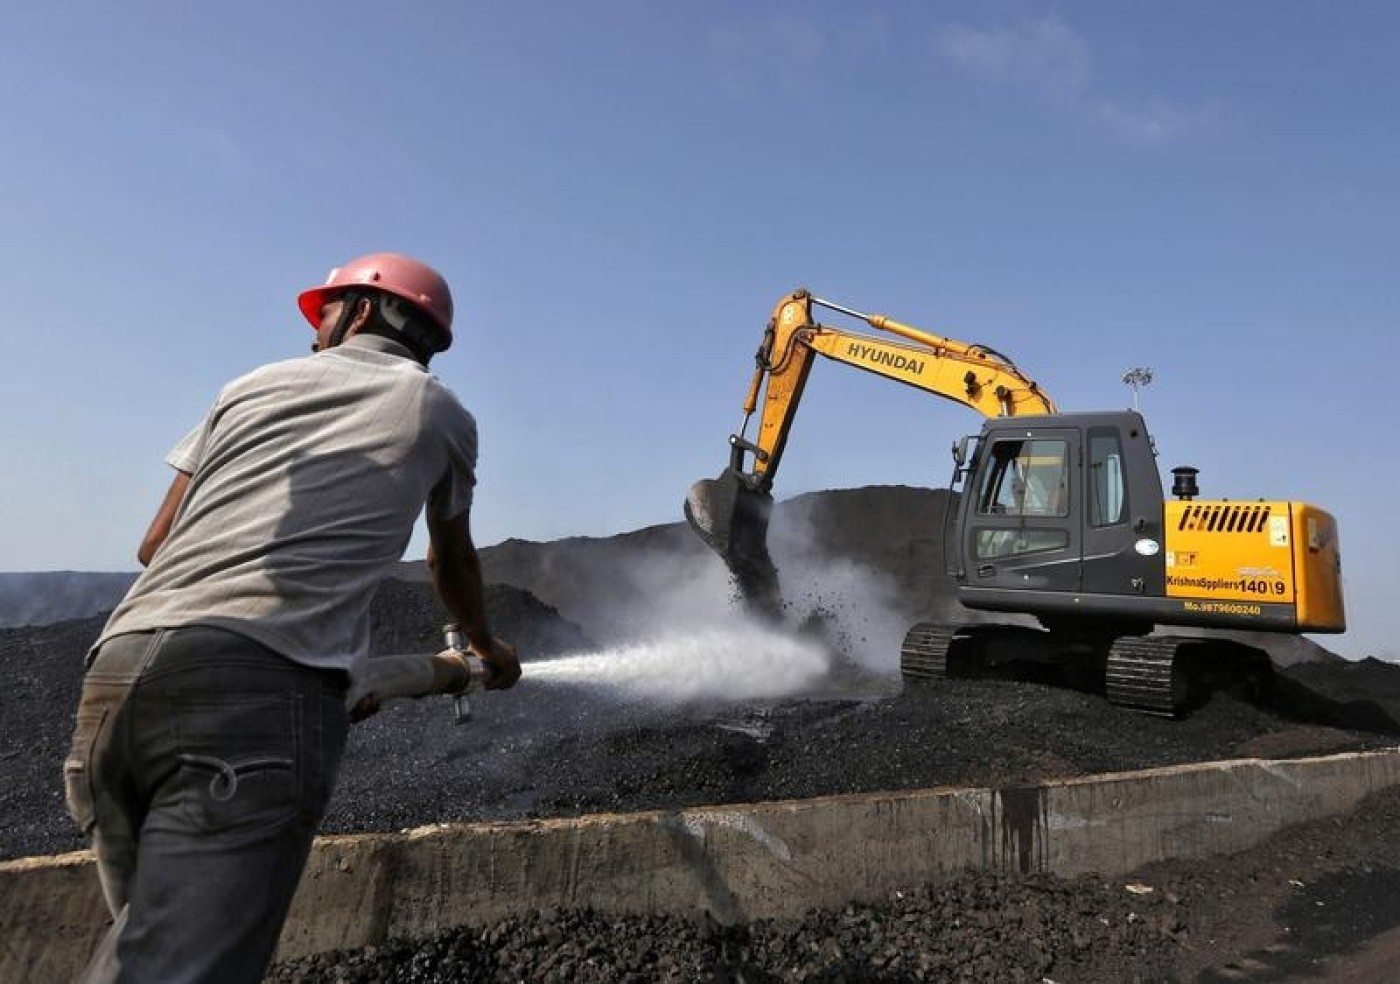 A worker sprays water over piles of coal as a bulldozer shifts coal at Mundra Port Coal Terminal in Gujarat. Credit: REUTERS/AMIT DAVE